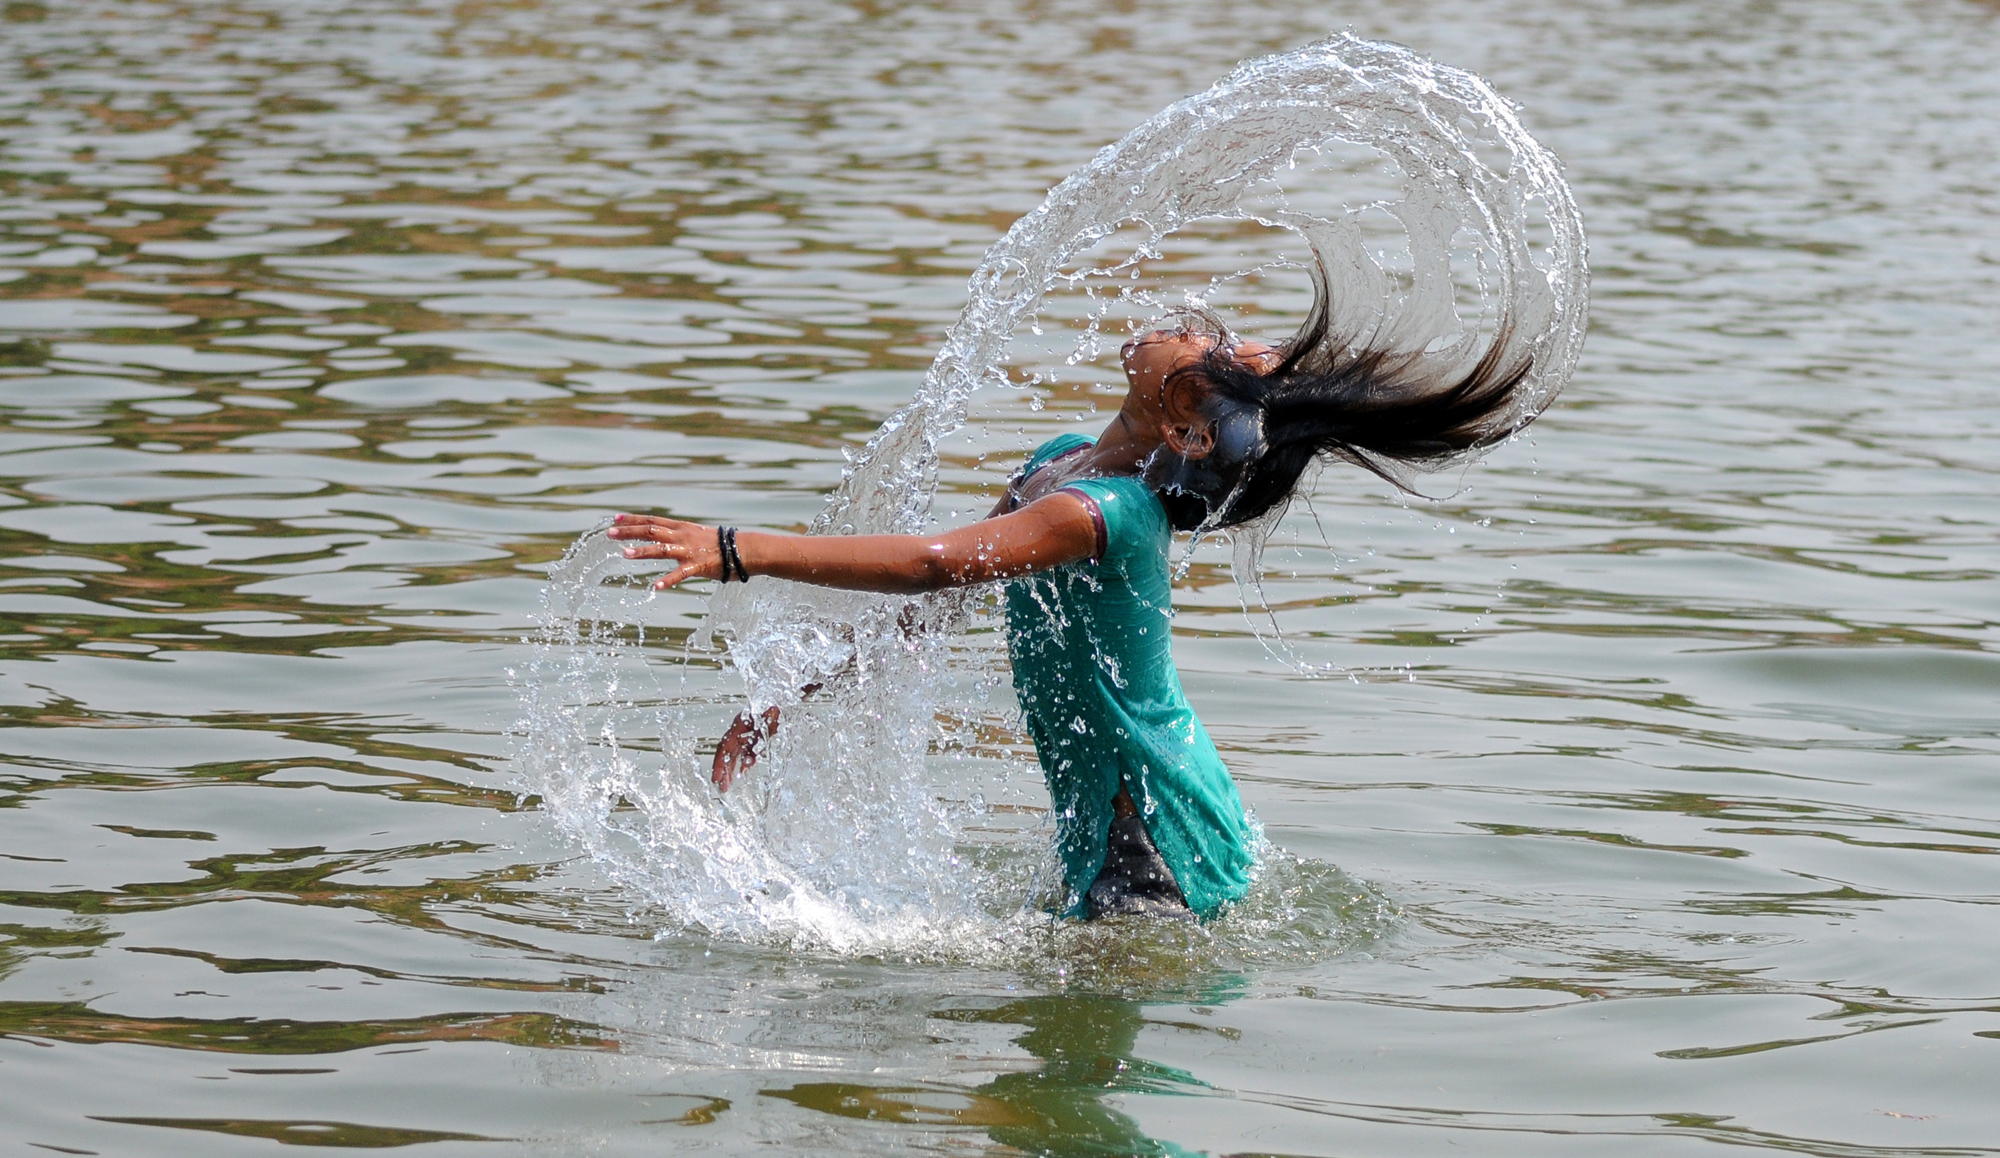 A girl Beat the Heat as bathing on a hot summer day at Mini lake, Sector 42 in Chandigarh